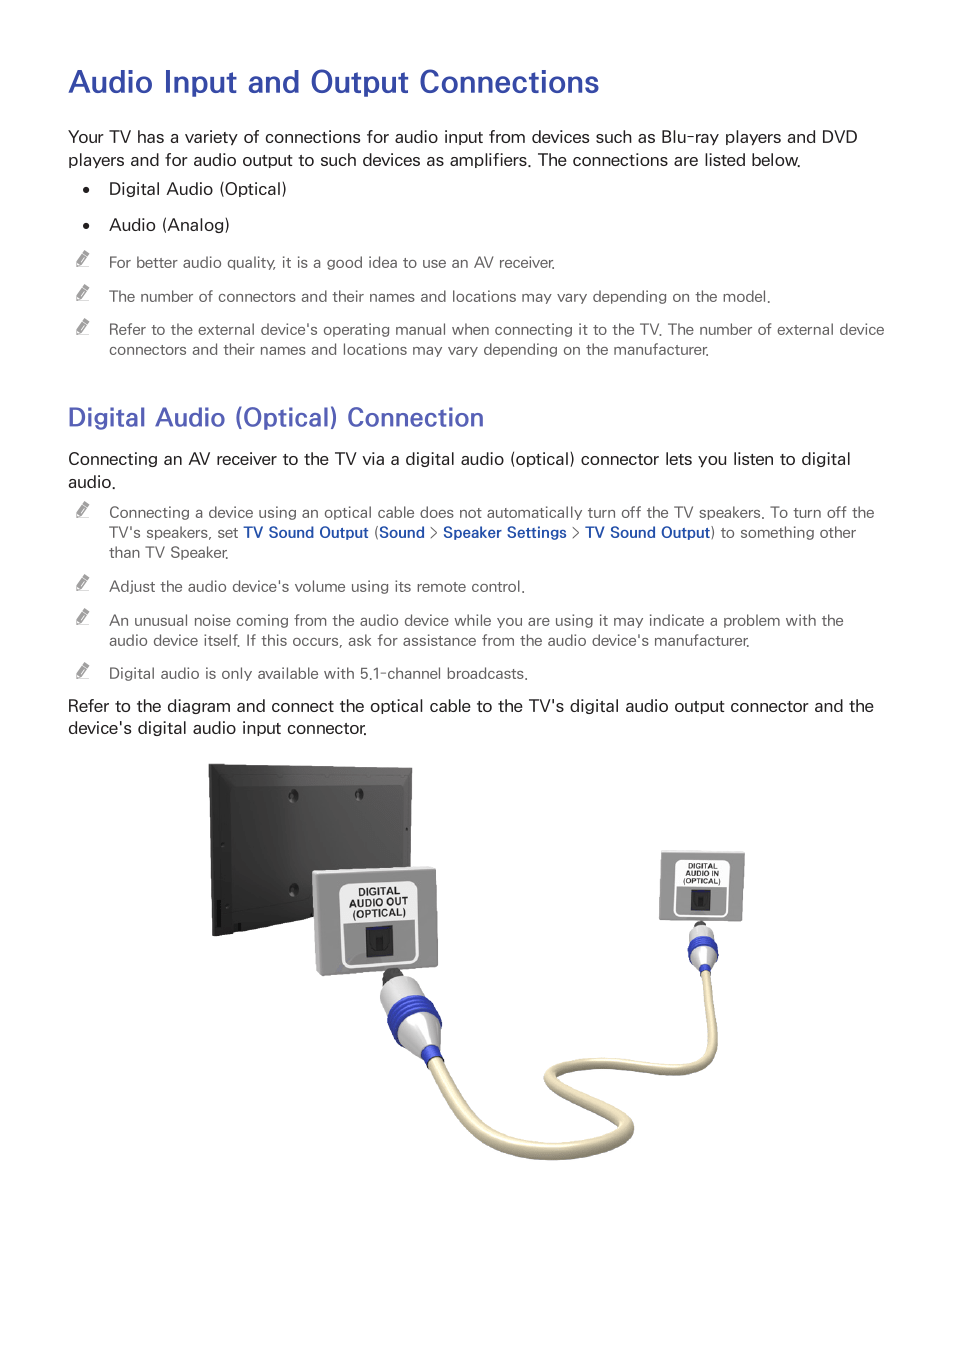 hight resolution of audio input and output connections digital audio optical connection samsung un24h4500afxza user manual page 10 146